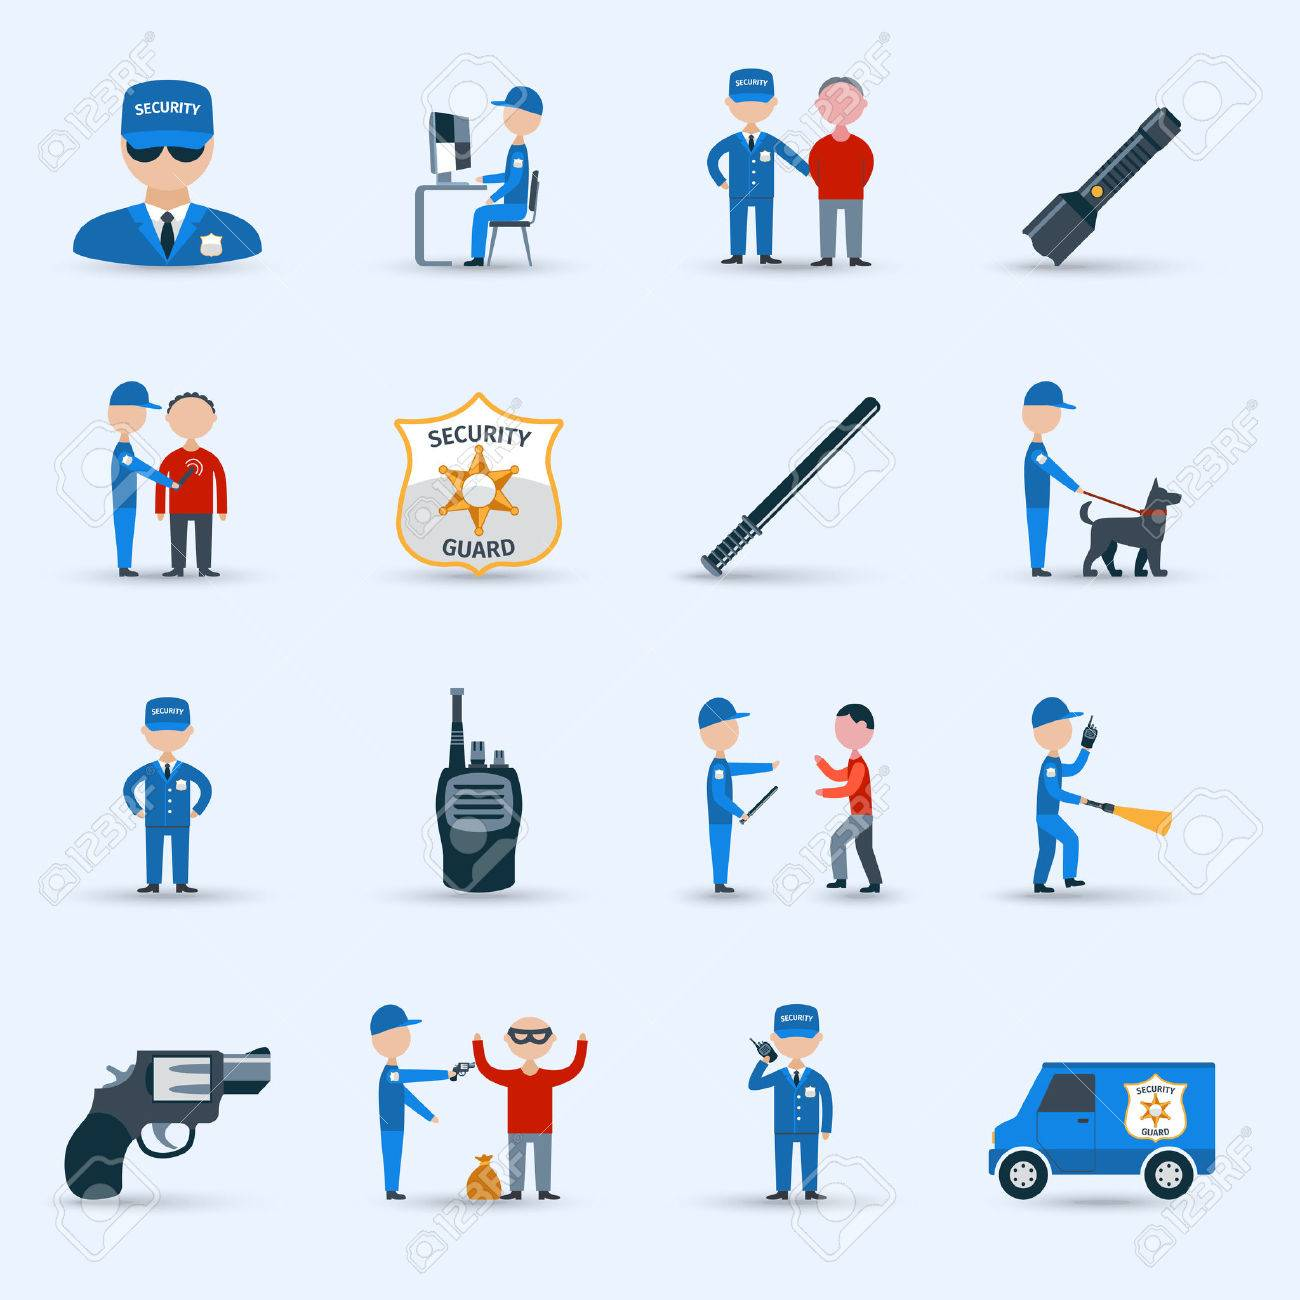 security guard officer service cartoon character icons set security guard officer service cartoon character icons set patrolling and detention duties abstract isolated vector